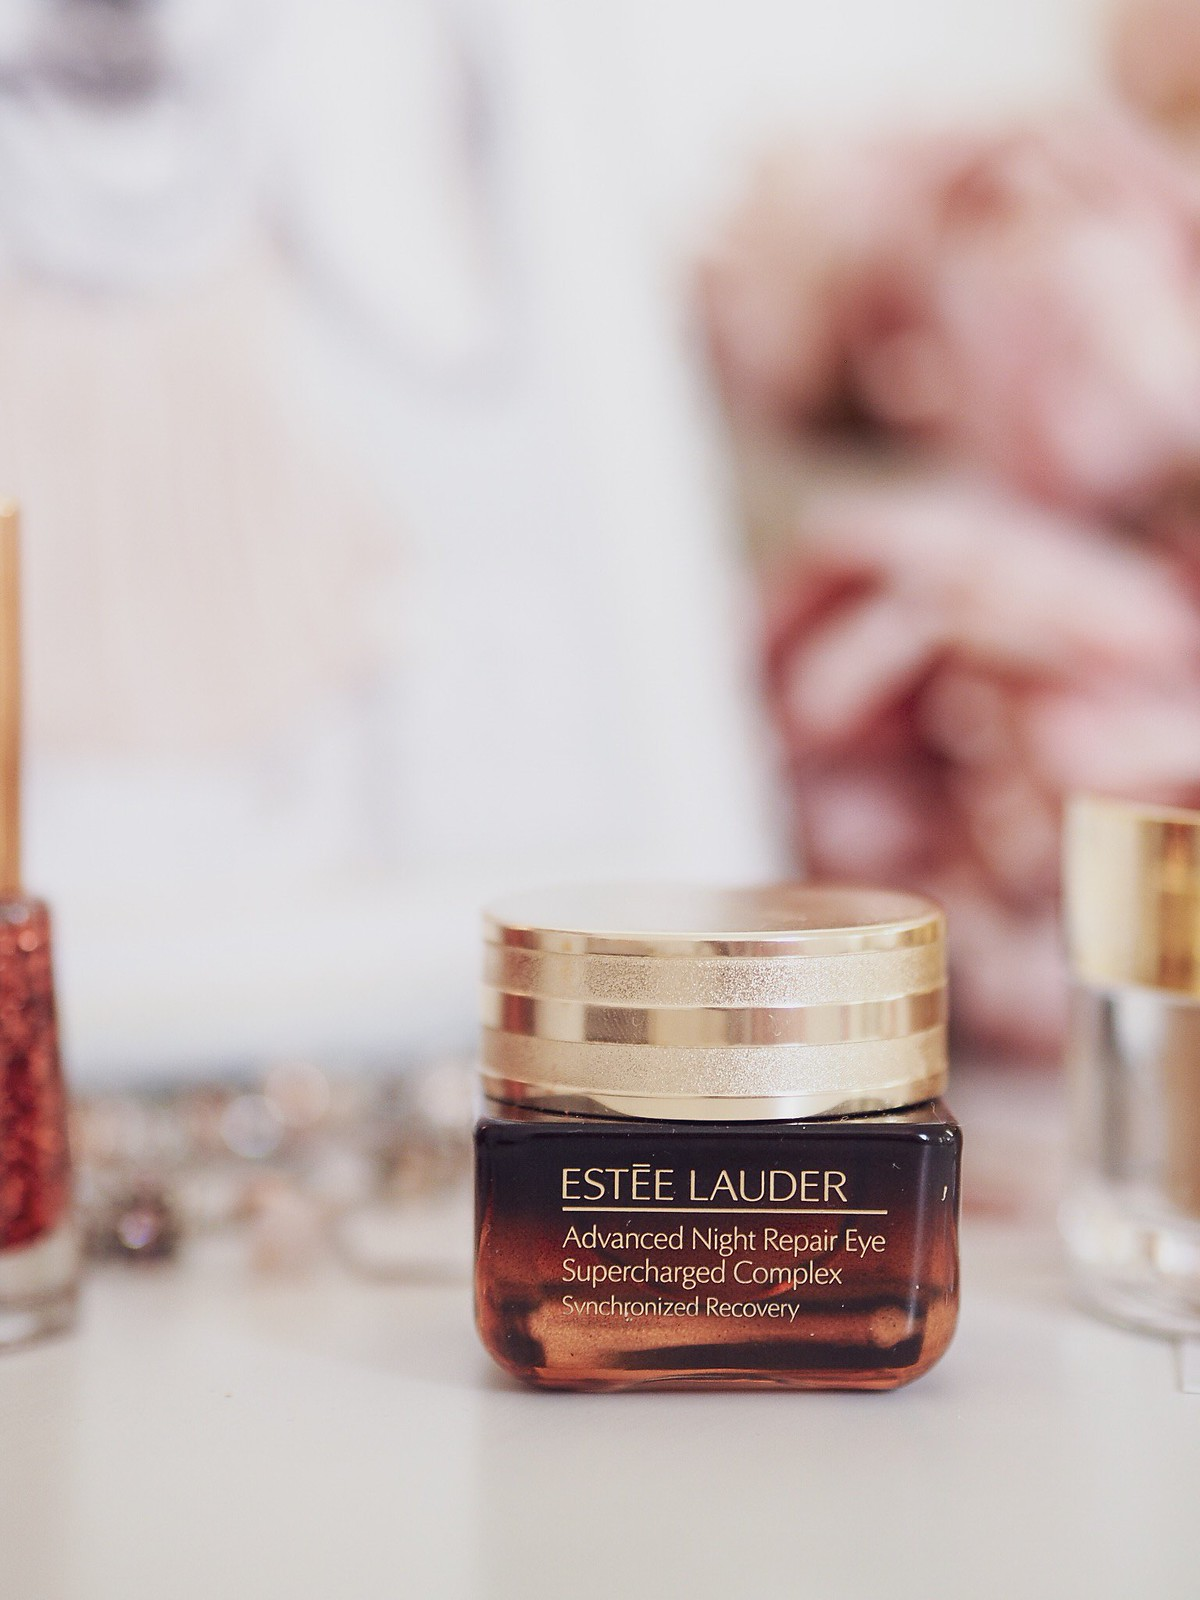 Estee lauder world duty free